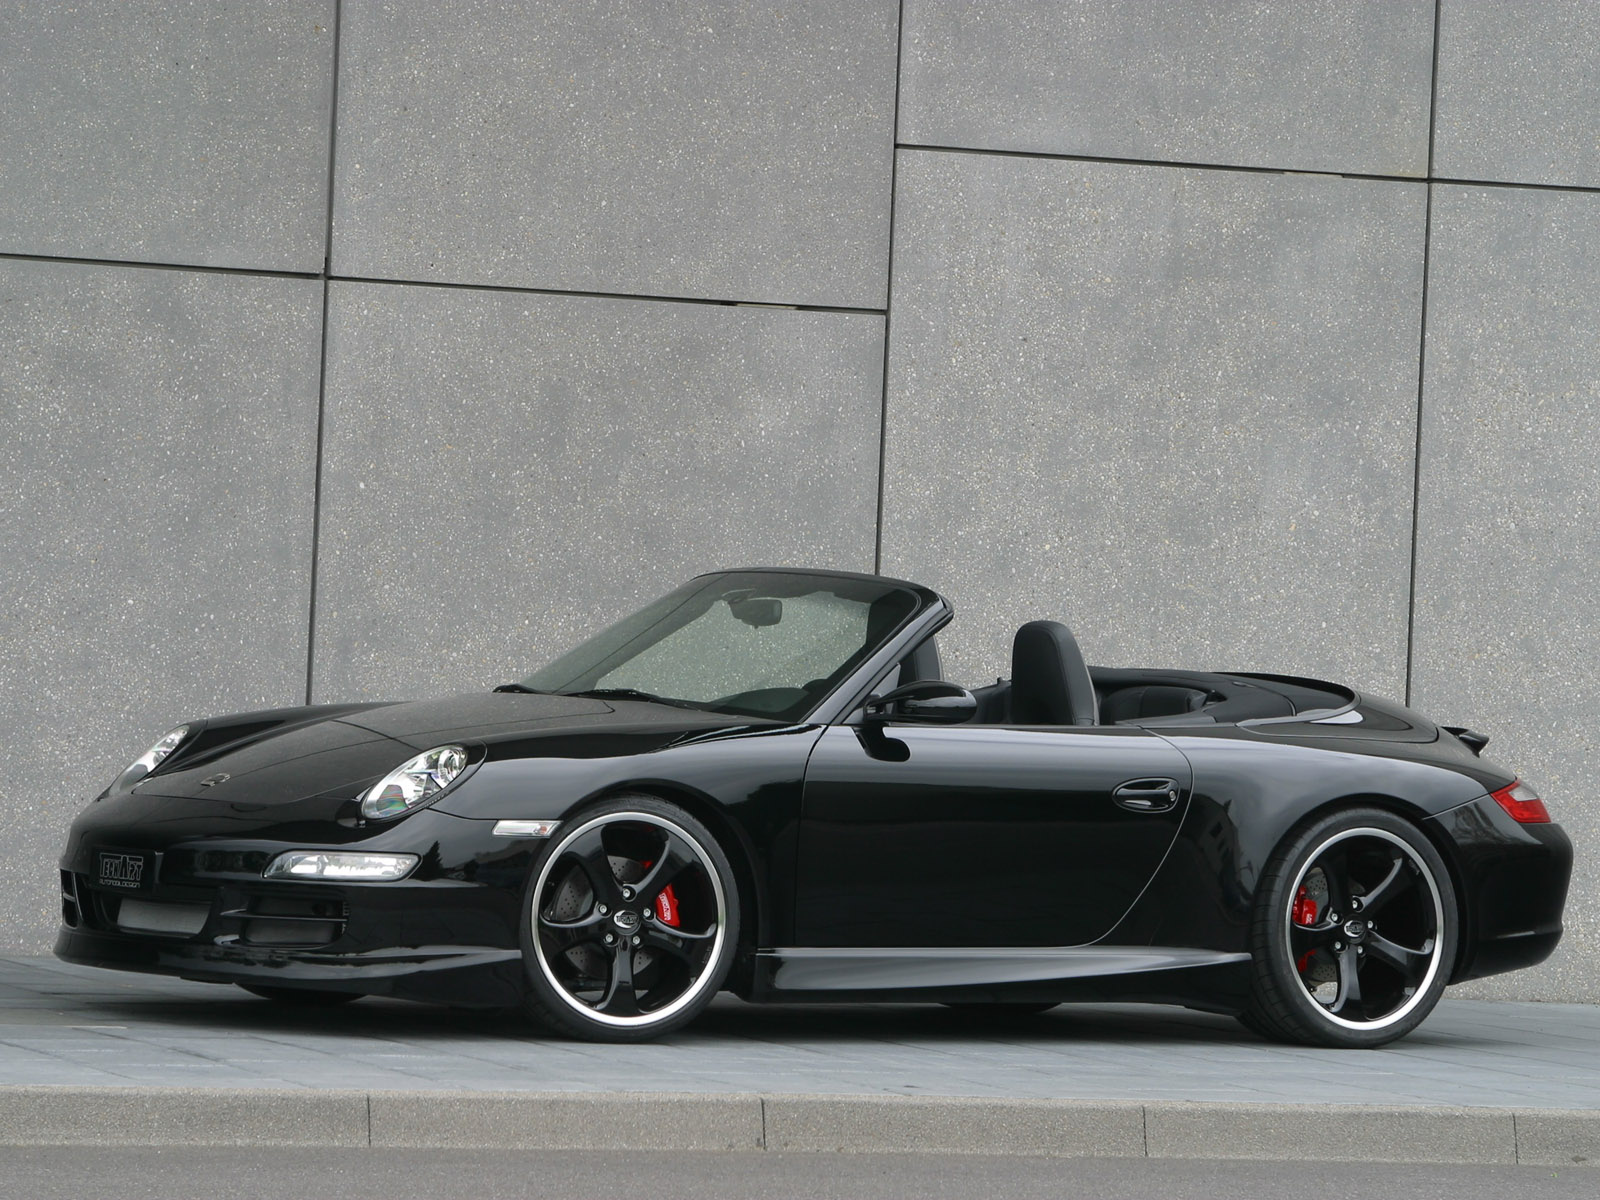 Porsche 911 Carrera Cabriolet, Photo #3